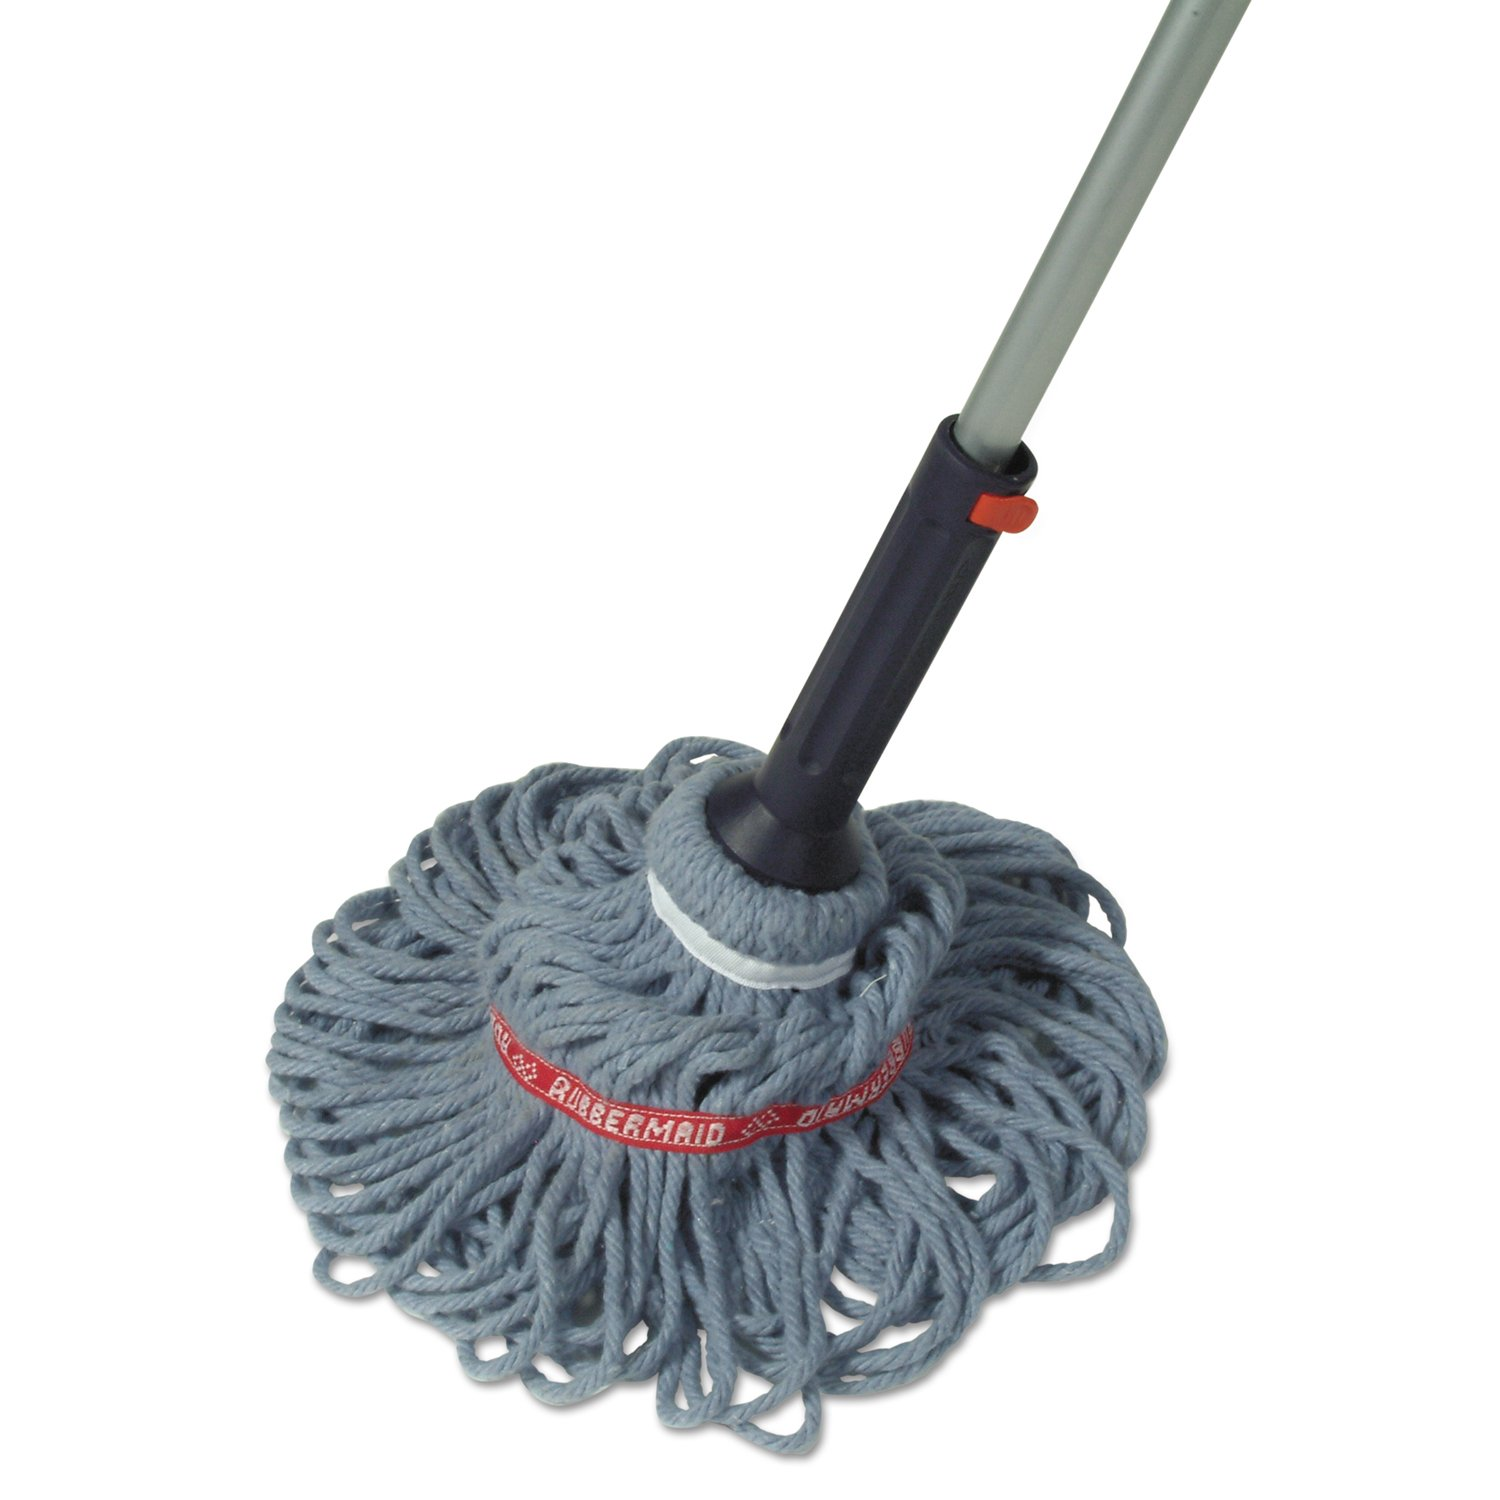 Rubbermaid Self-Wringing Ratchet Twist Mop with Blended Yarn Head, 54-inch (1818664) by Rubbermaid Commercial Products